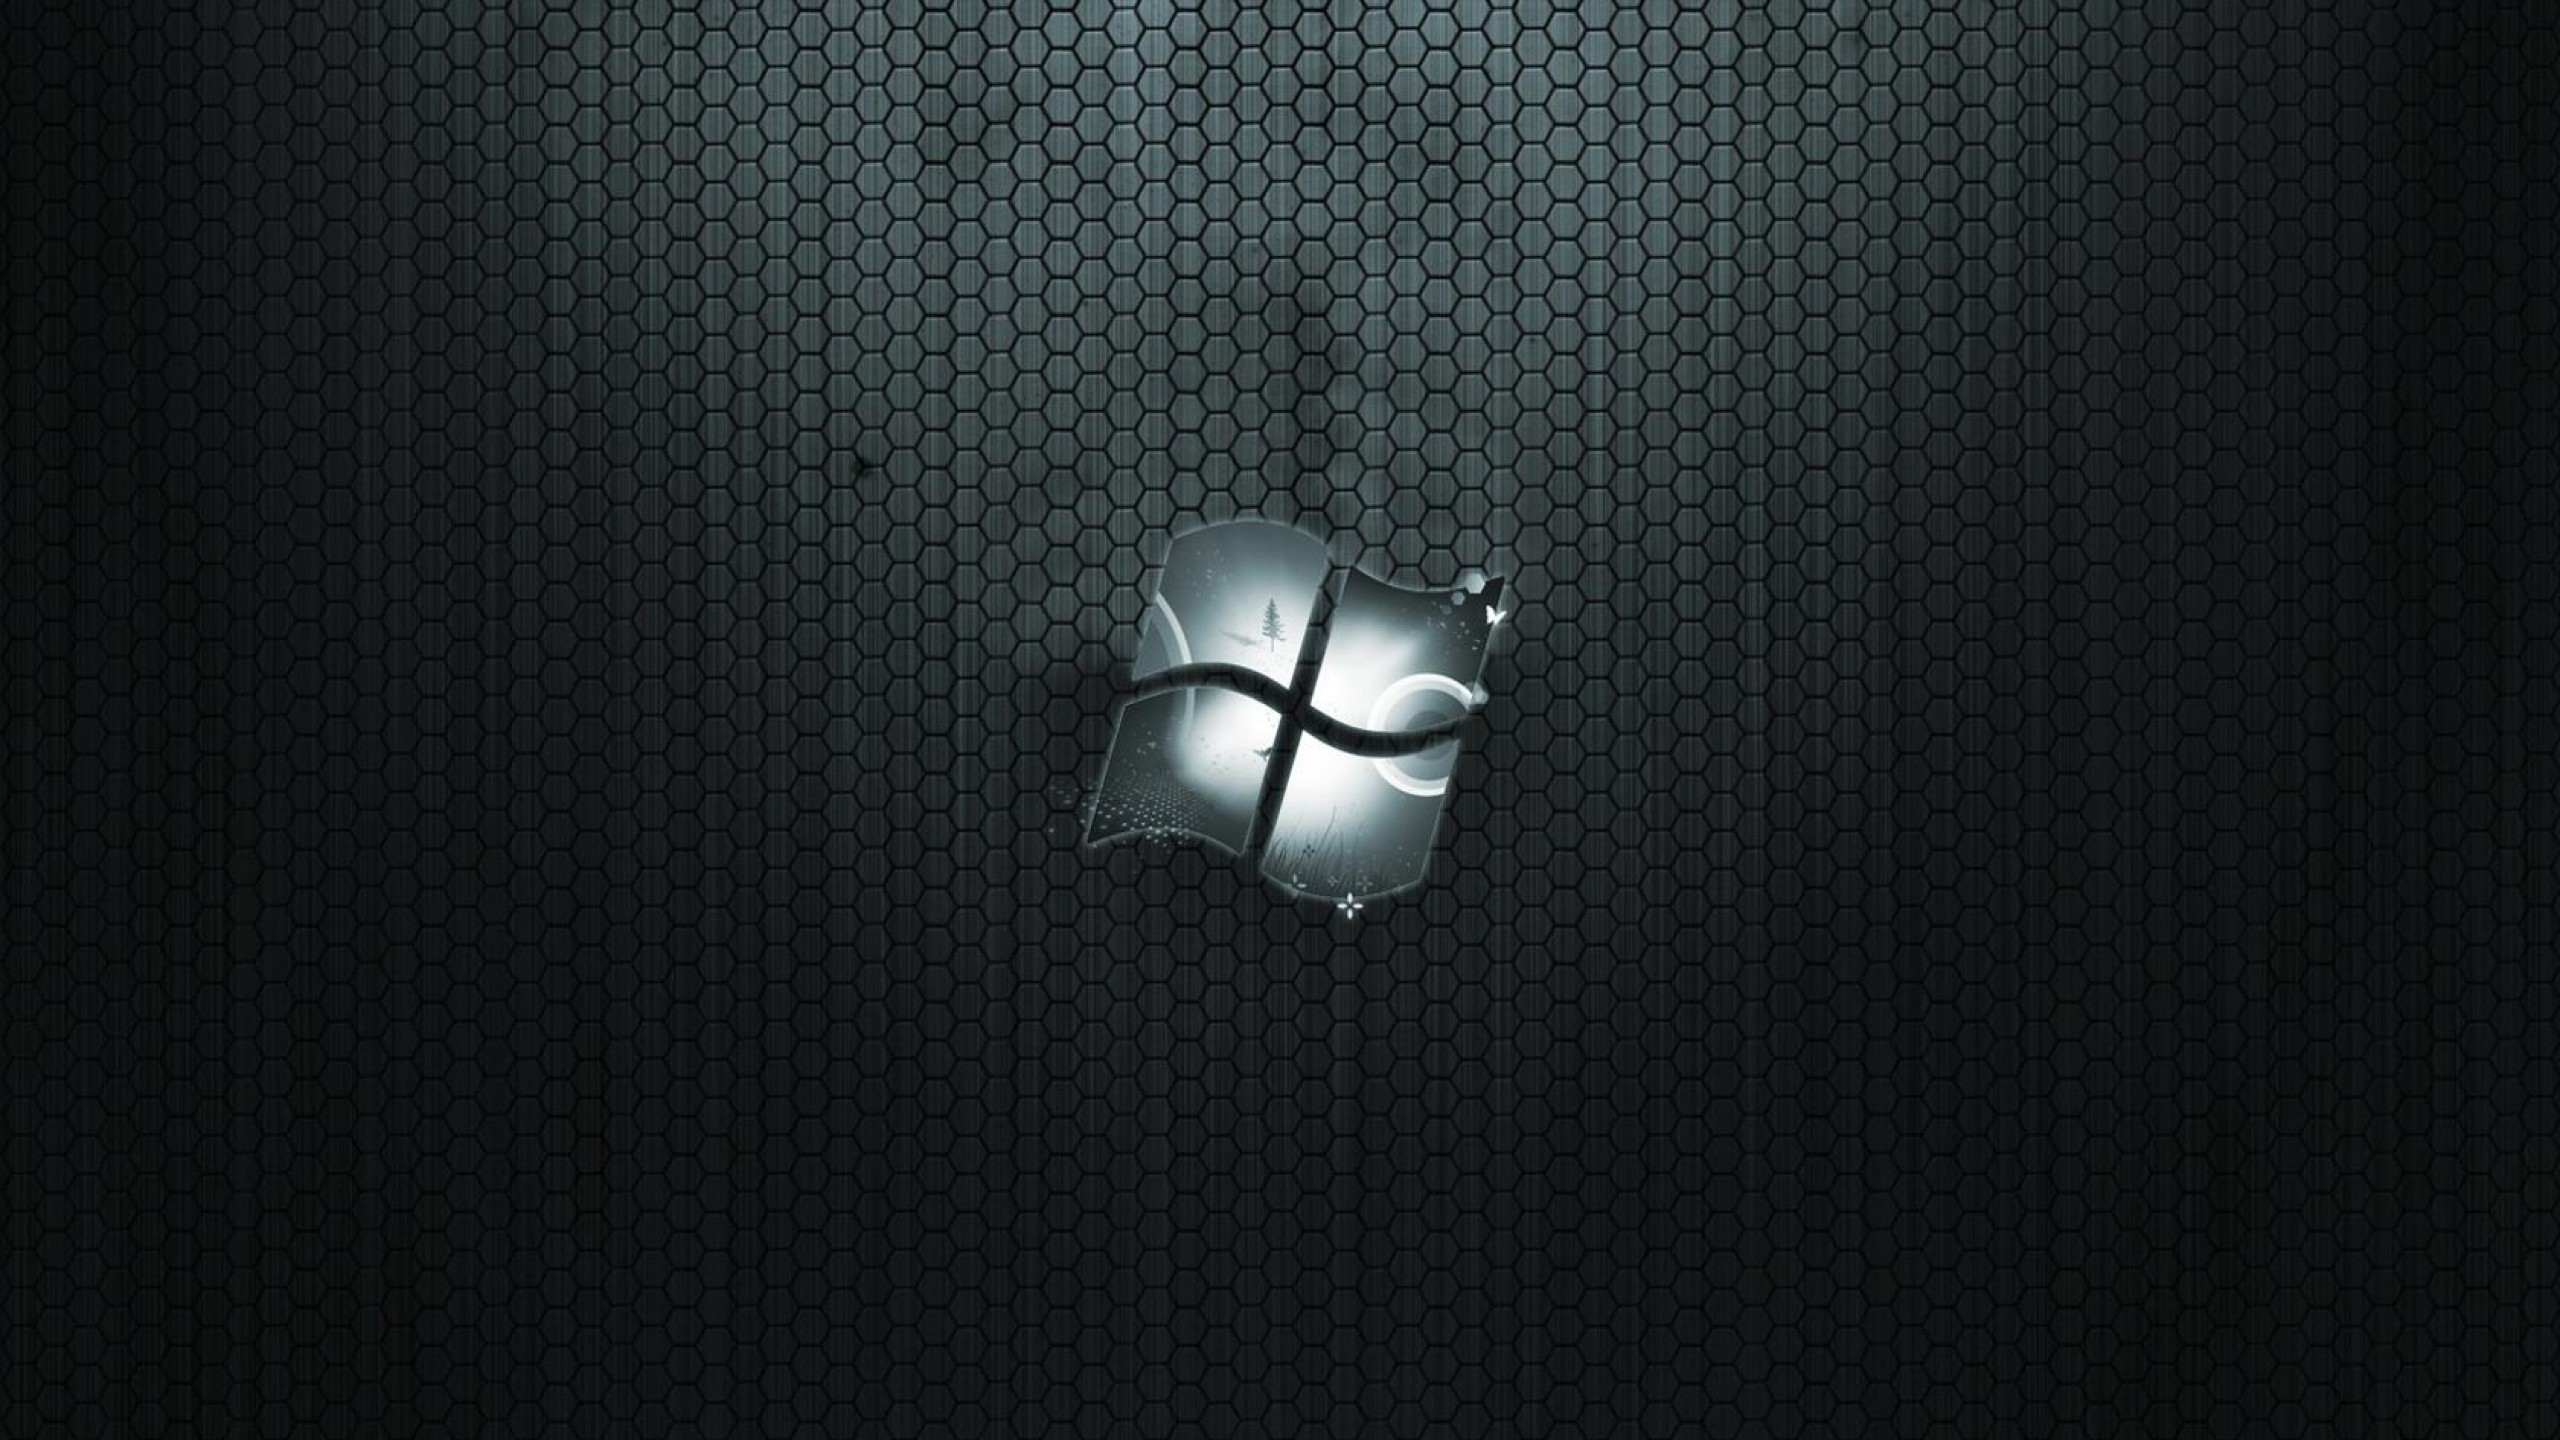 2560x1440 Black Windows Wtyjallpapers HD Wallpaper